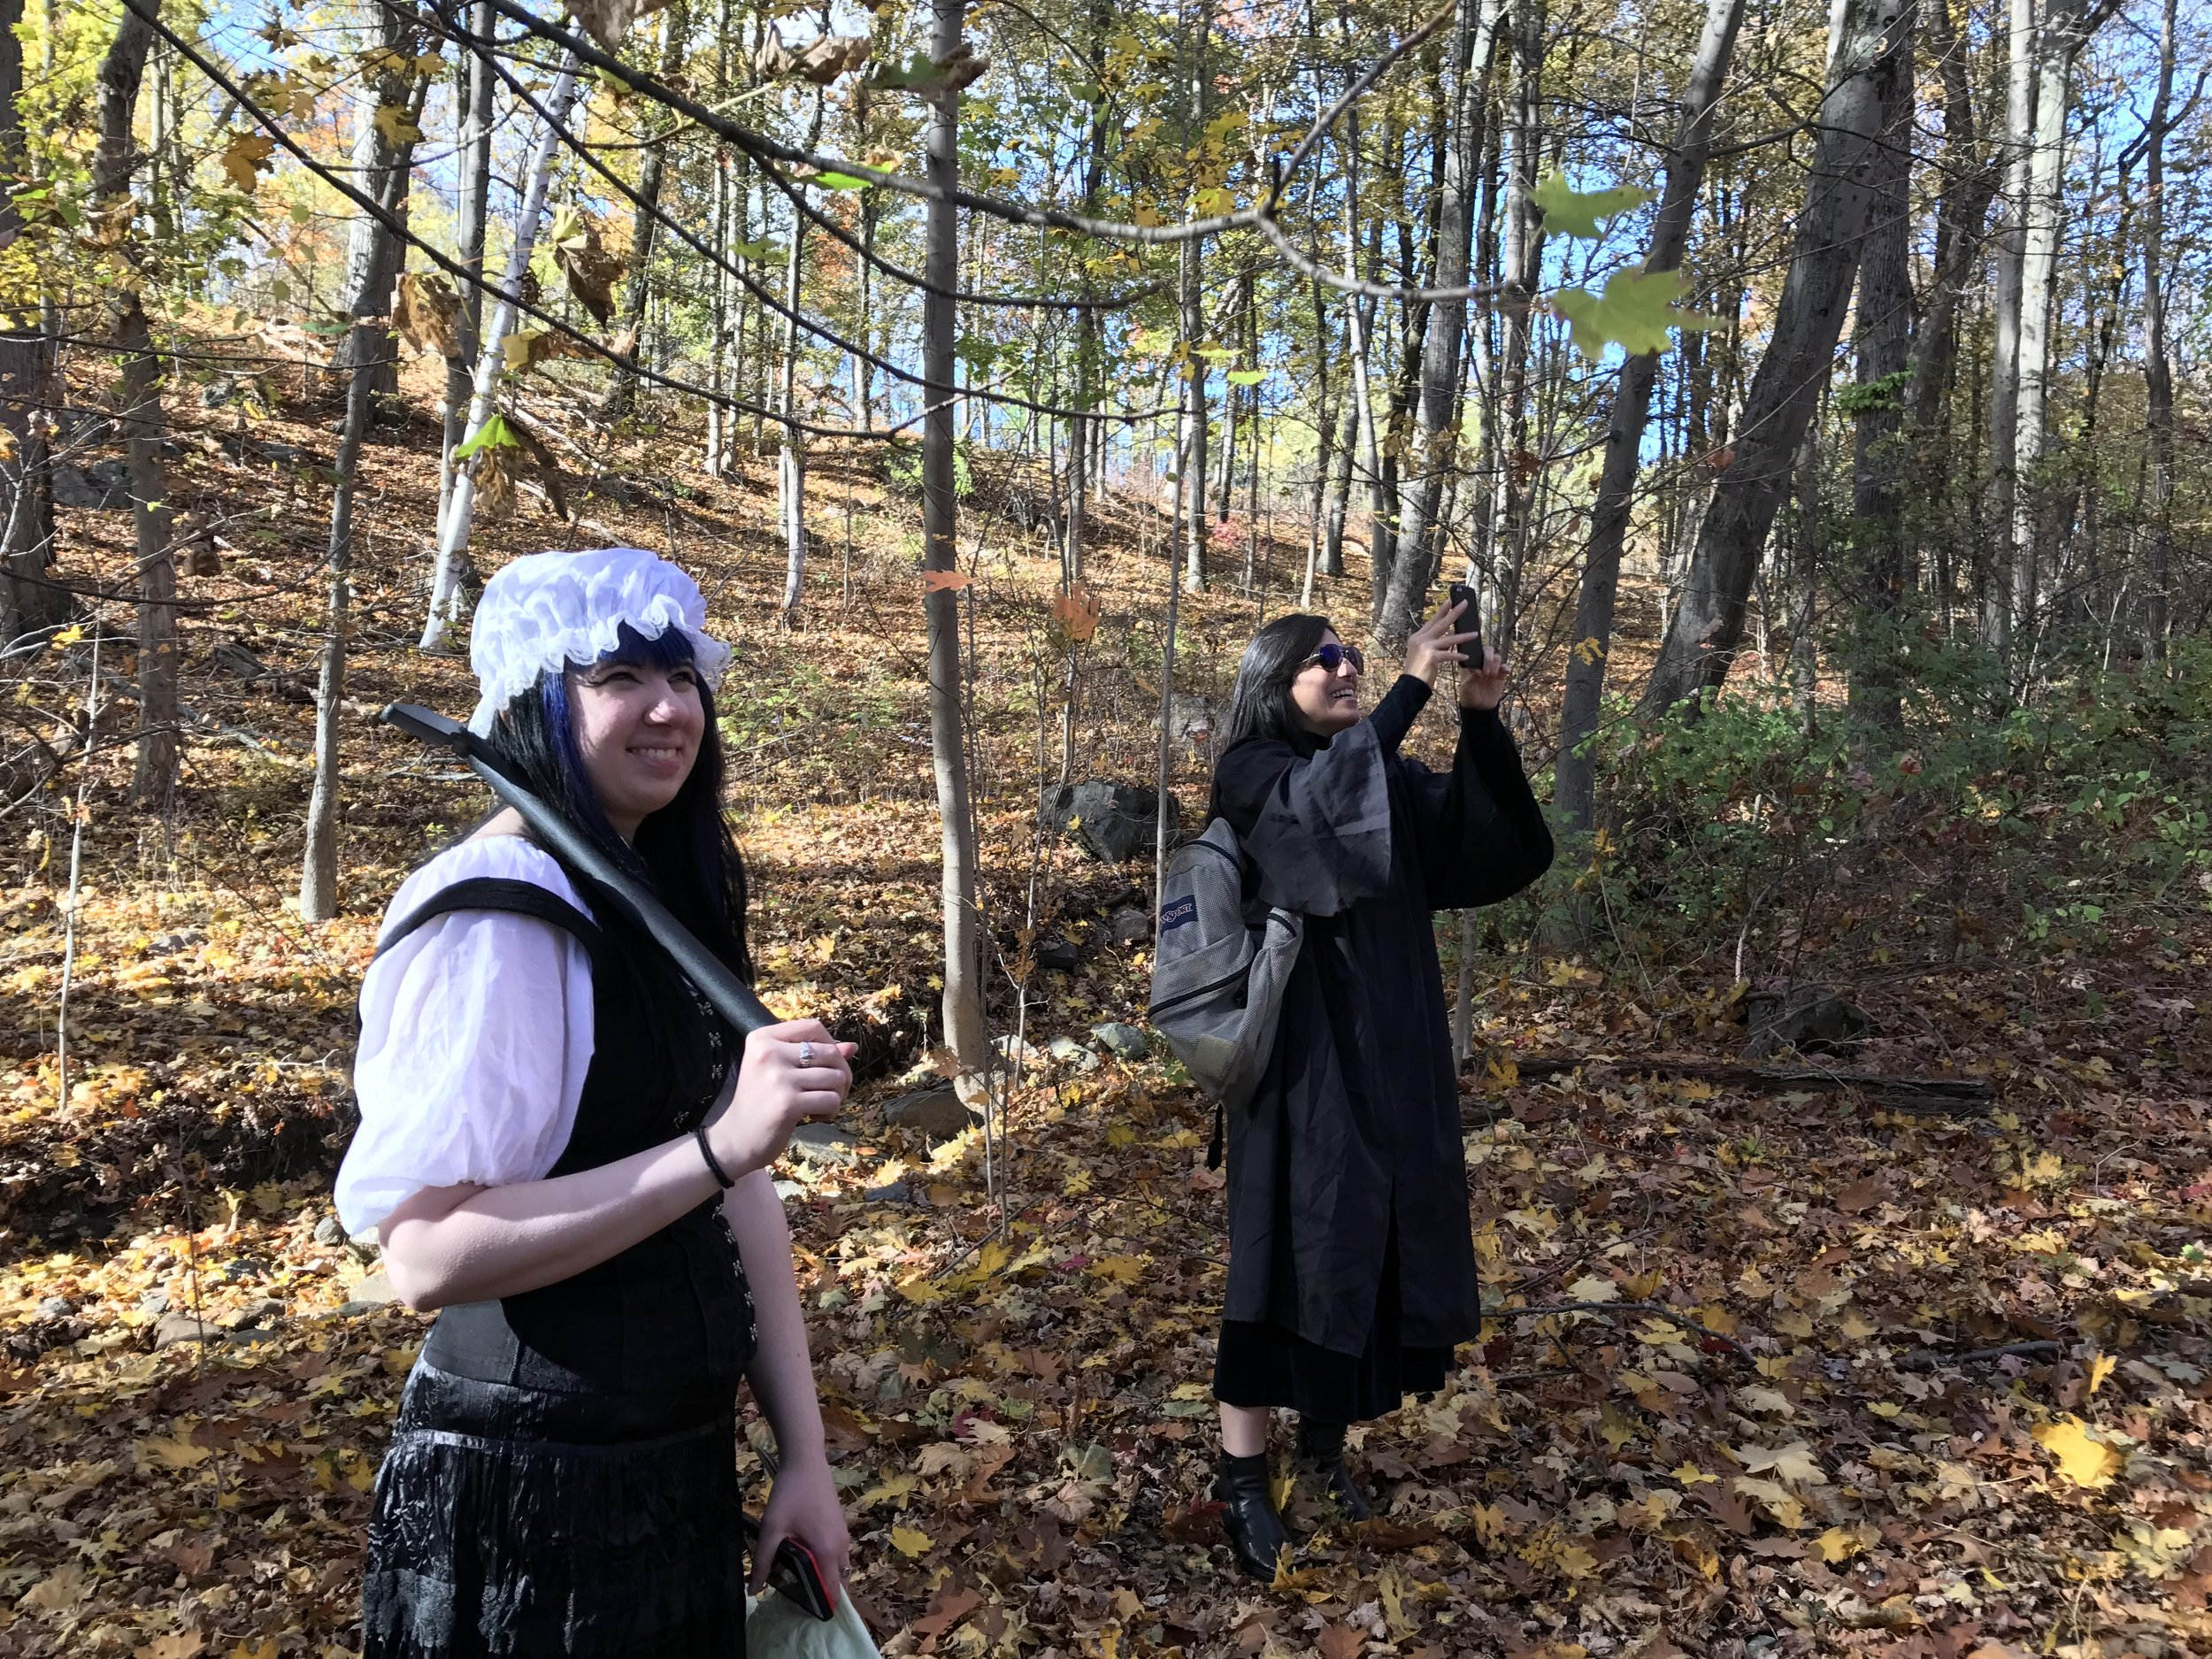 On the set of Reel Groovy Films shoot with Evelle and Mima, pilgrims transported through time with a great understanding of new technology, 2016.